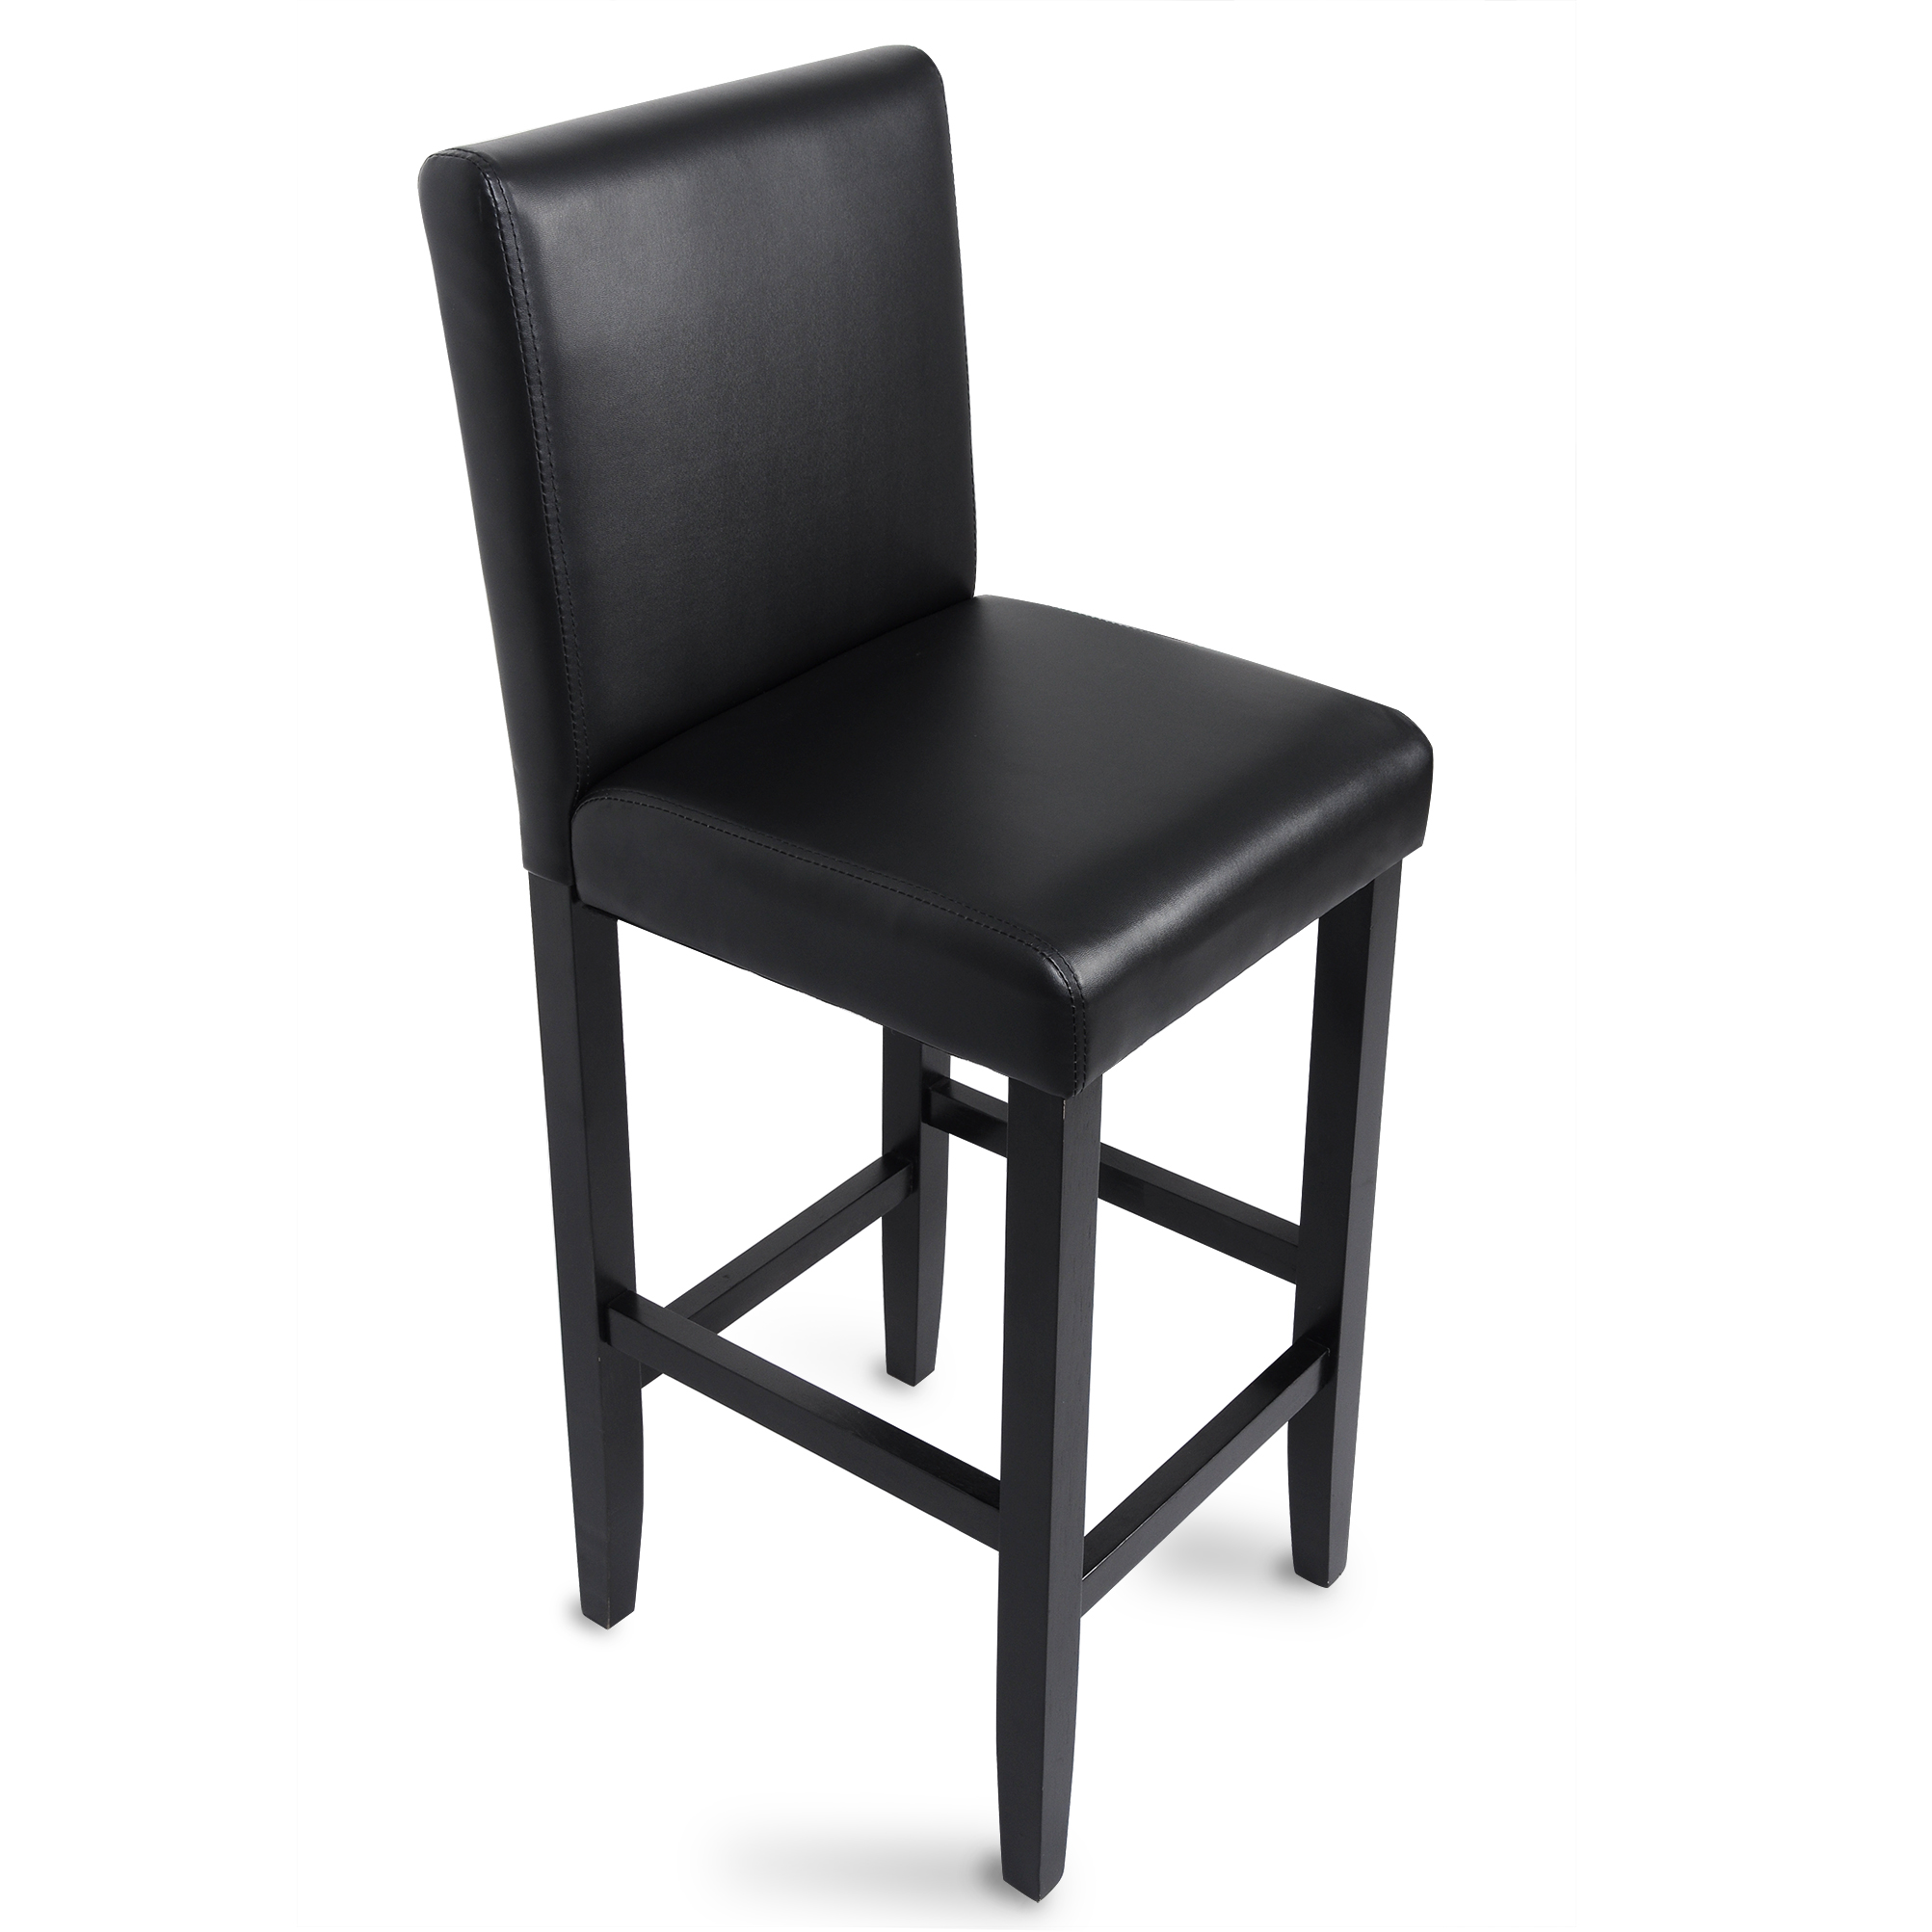 barhocker bistrohocker barst hle mit lehne hocker massivholz schwarz braun 202 ebay. Black Bedroom Furniture Sets. Home Design Ideas